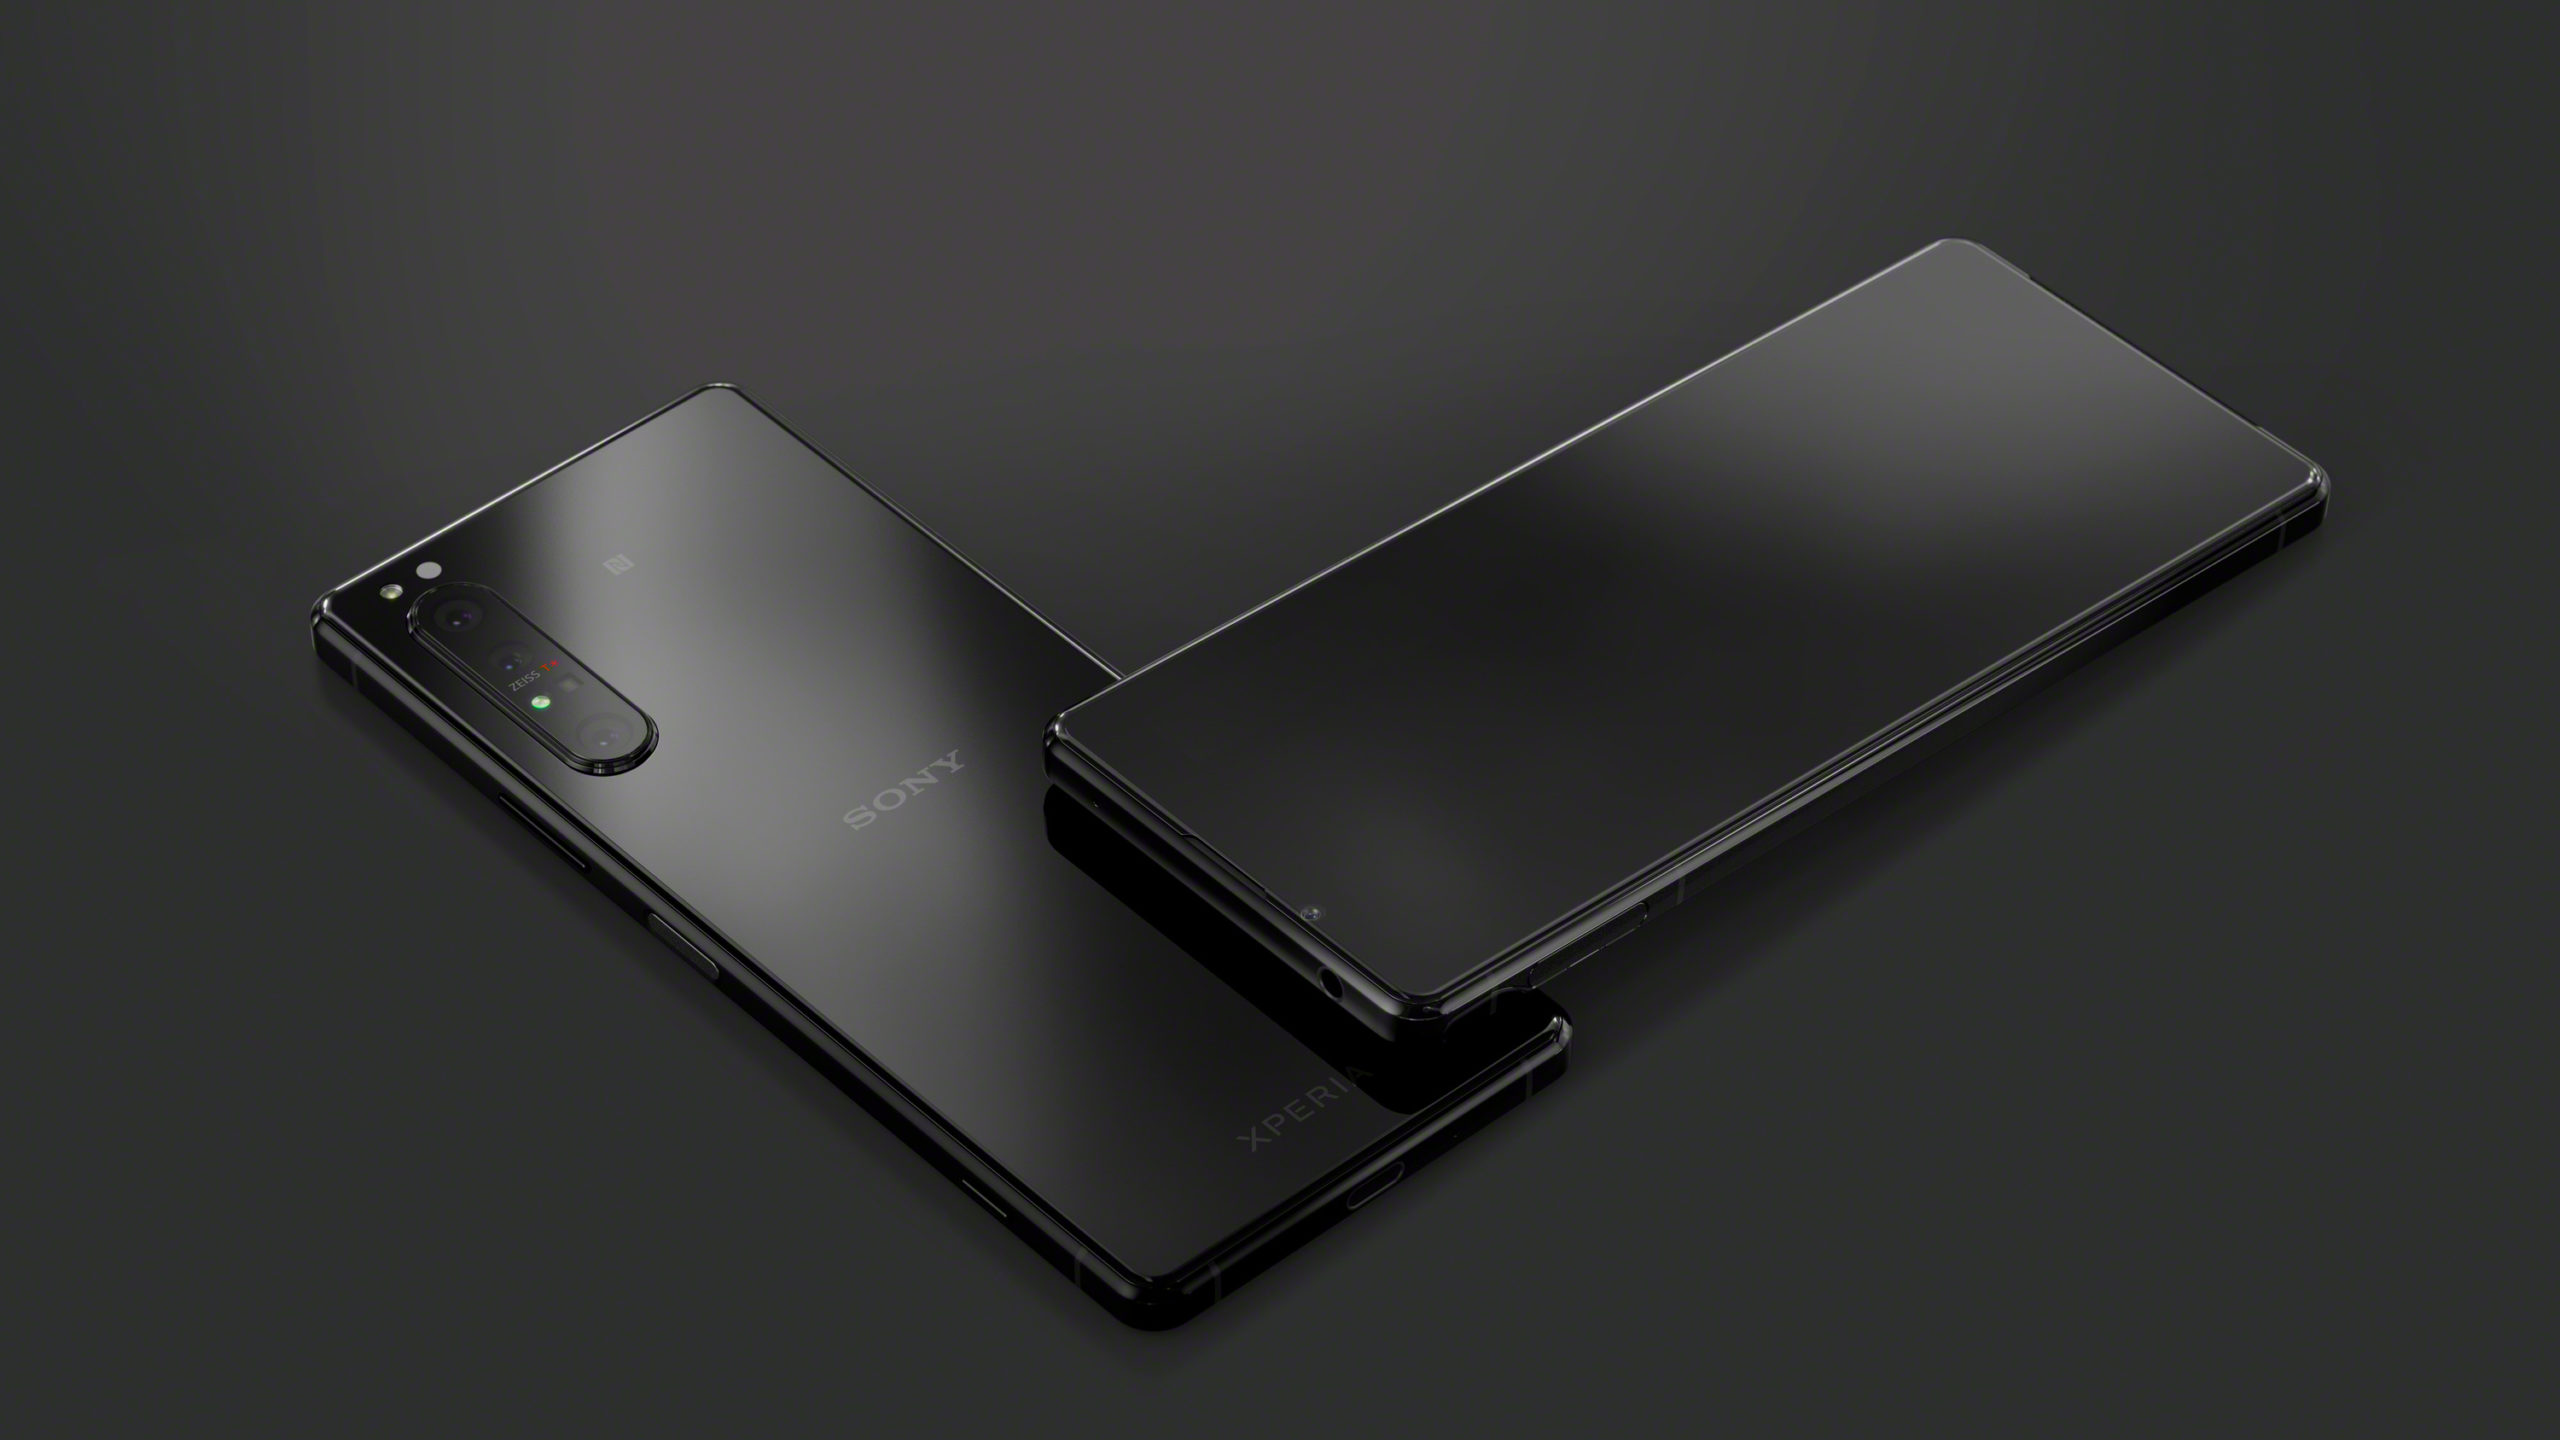 Sony unveils 5G flagship Xperia 1 II and mid-range Xperia 10 II (Update: Xperia Pro with HDMI input)